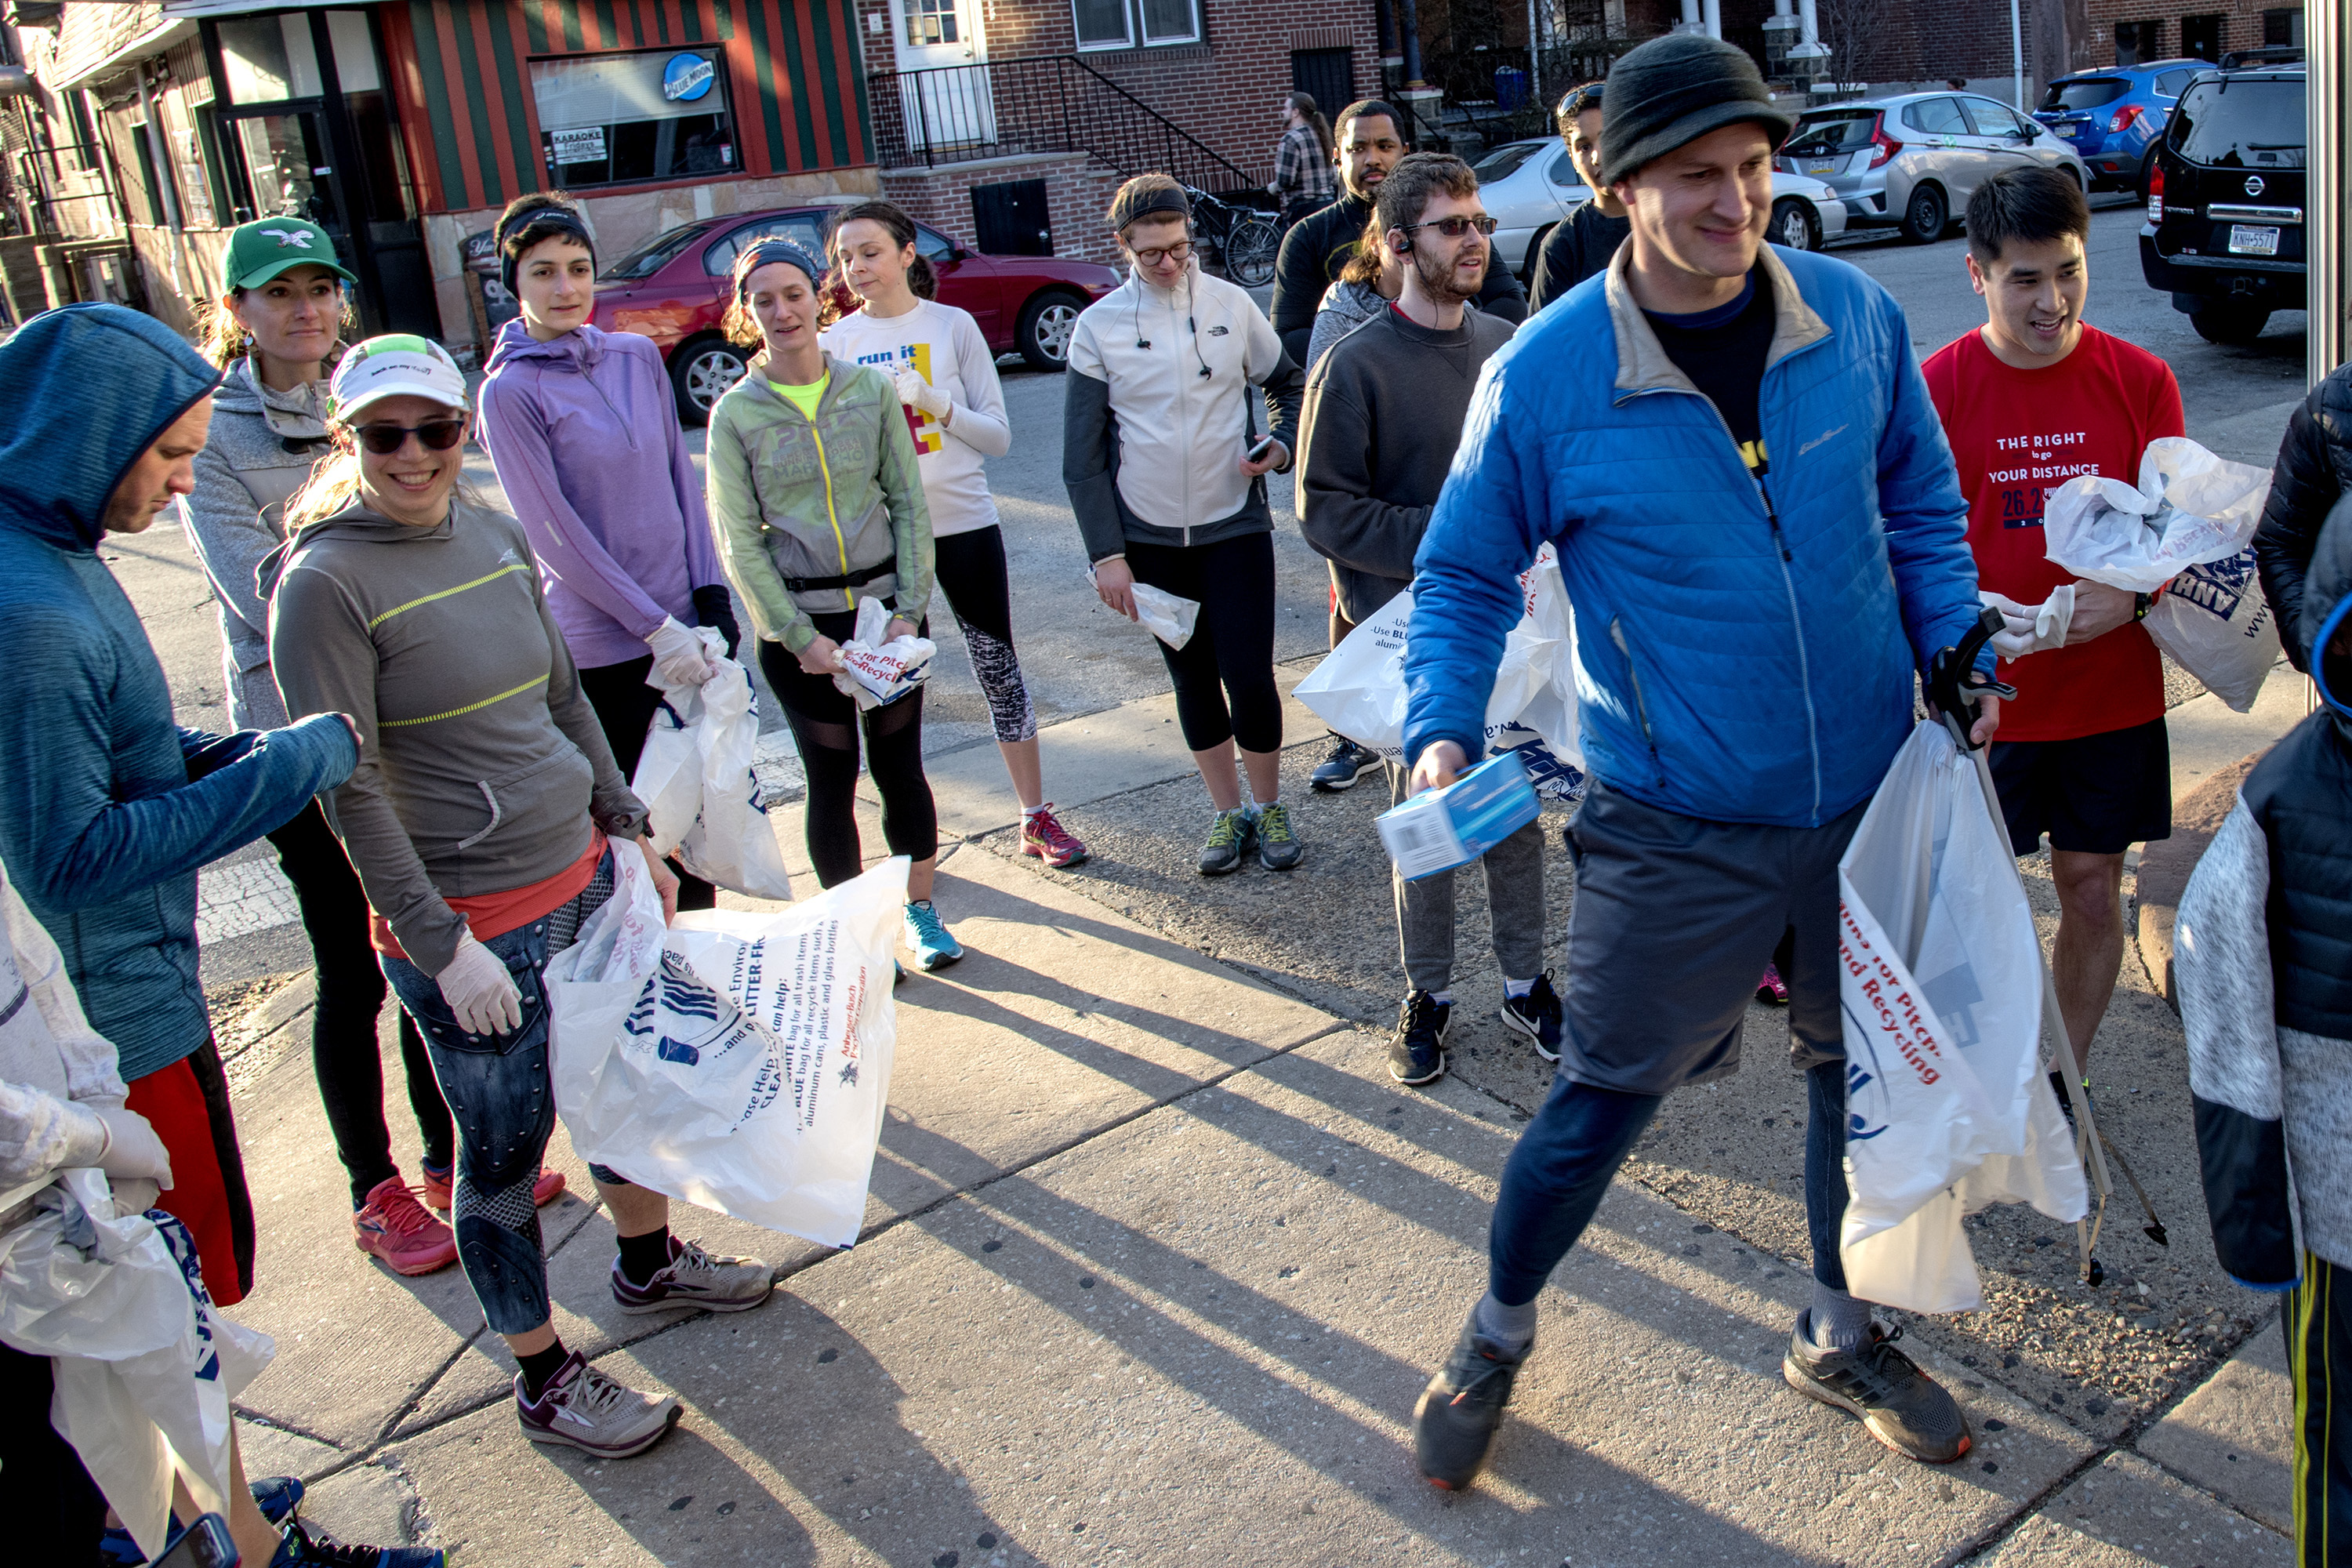 Dave Brindley (right) with Not in Philly, hands out gloves and trash bags before the West Philly Runners try out plogging ahead of Philly Plogging week April 9-15. TOM GRALISH / Staff Photographer